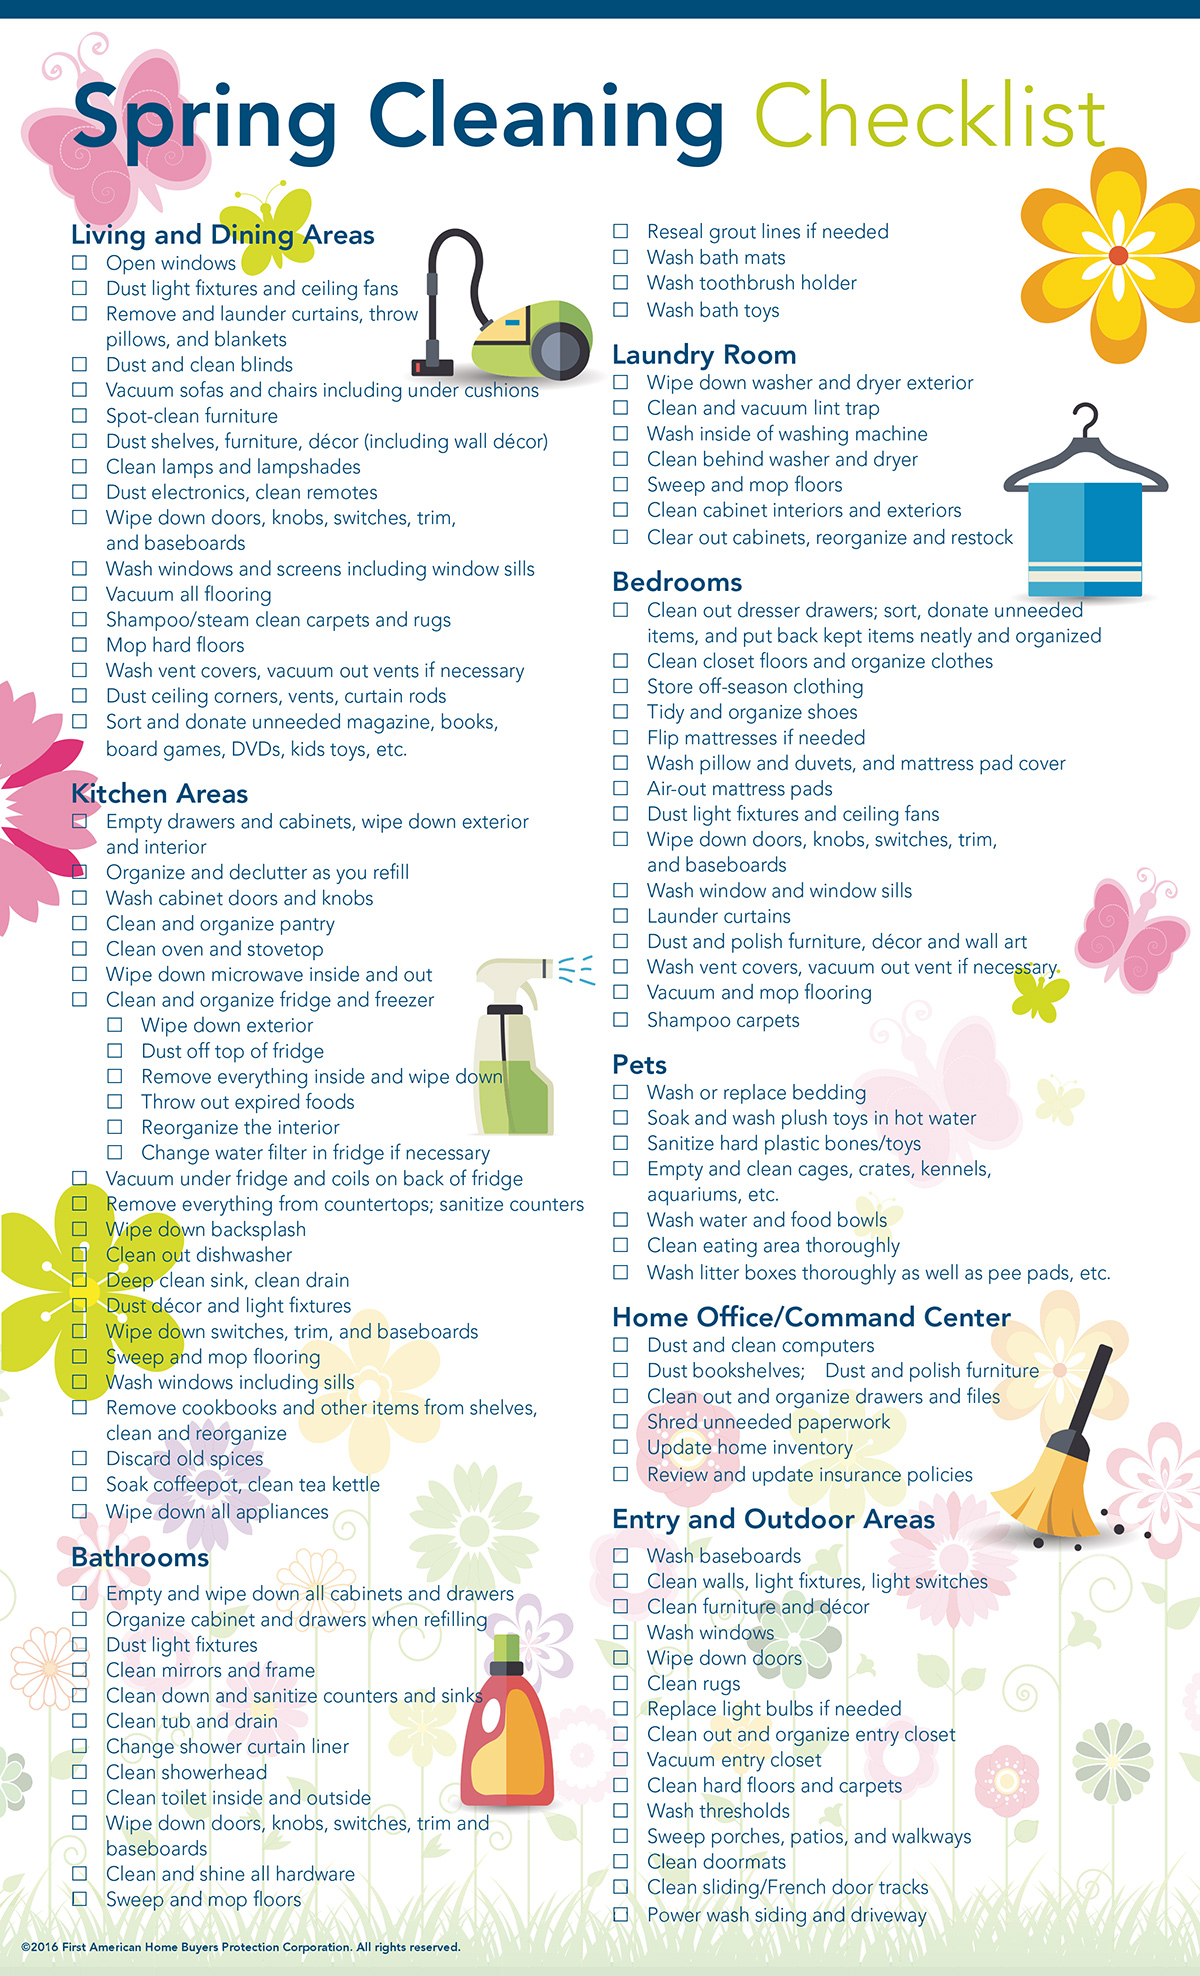 Spring Cleaning Checklist Australia